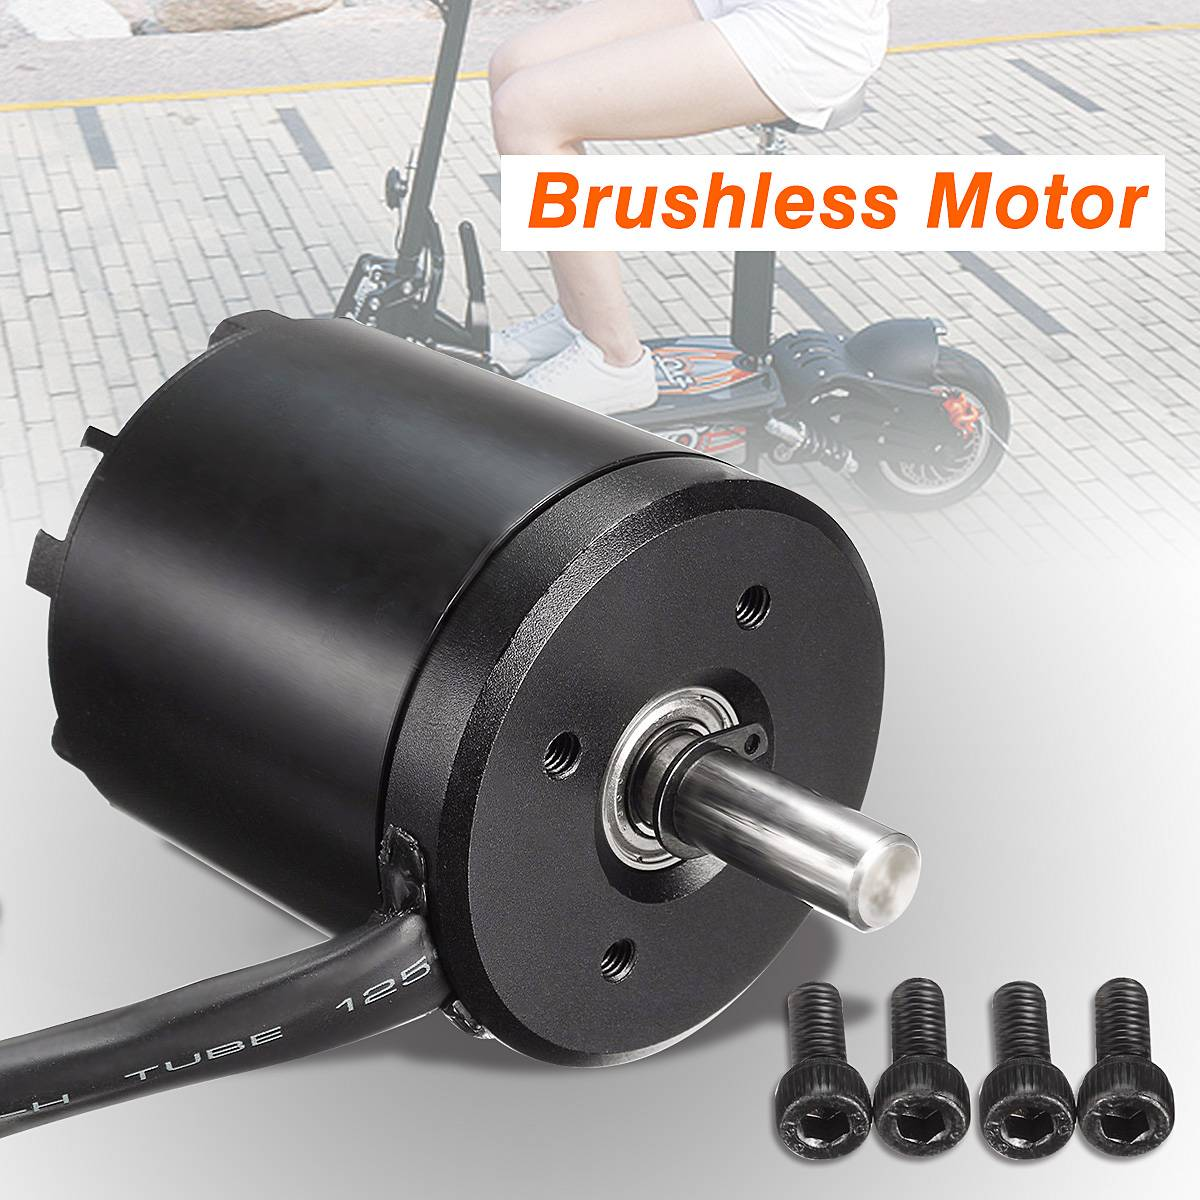 <font><b>Brushless</b></font> Sensored <font><b>Motor</b></font> 5065 50 65 <font><b>270KV</b></font> 1820W For Electric Skate Scooter 3-8s image